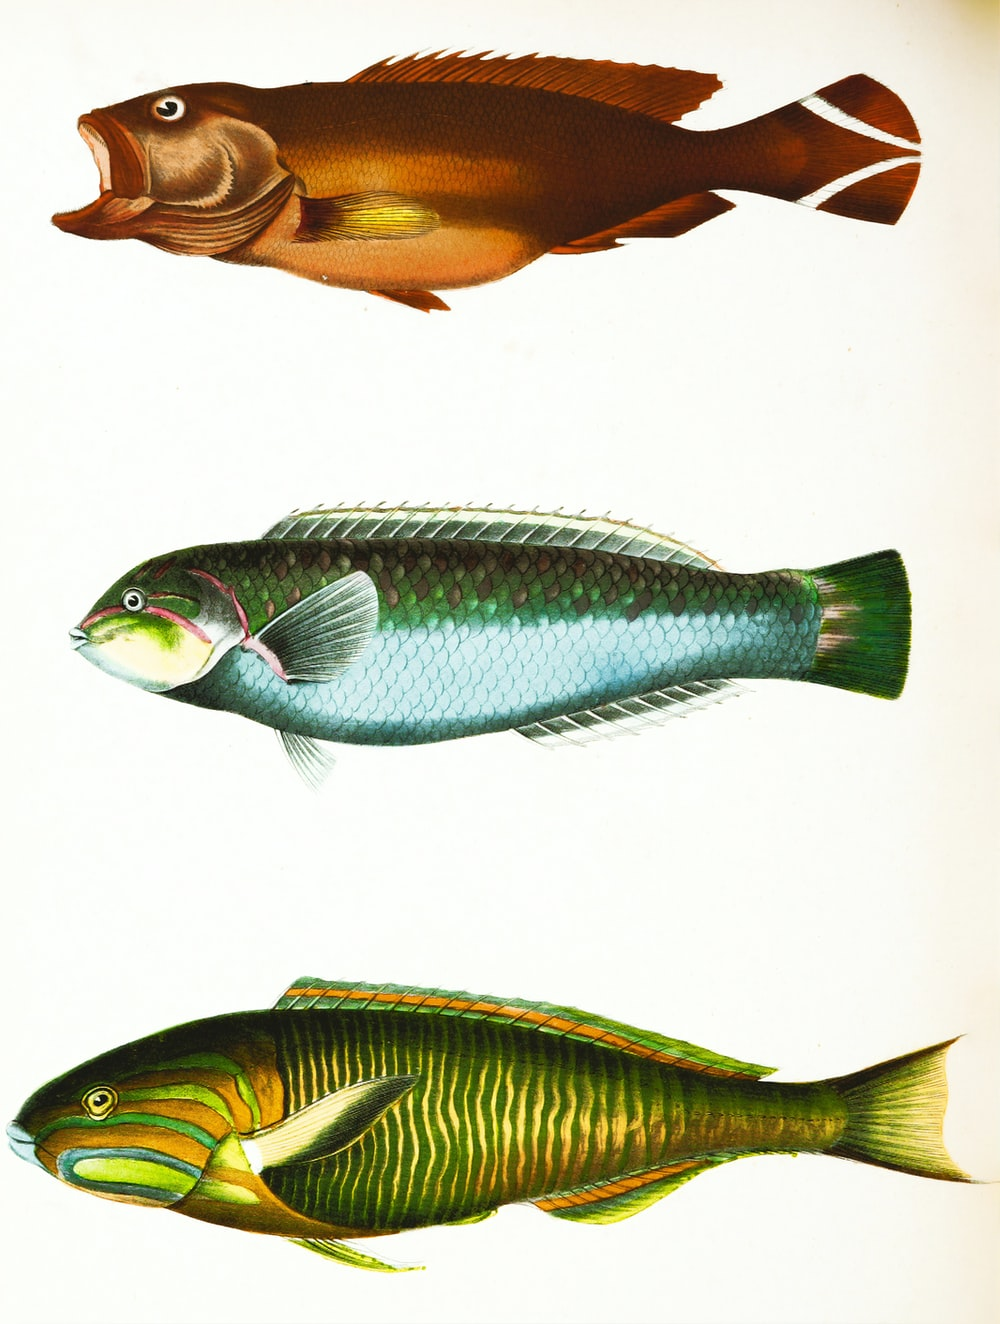 3 yellow and silver fishes